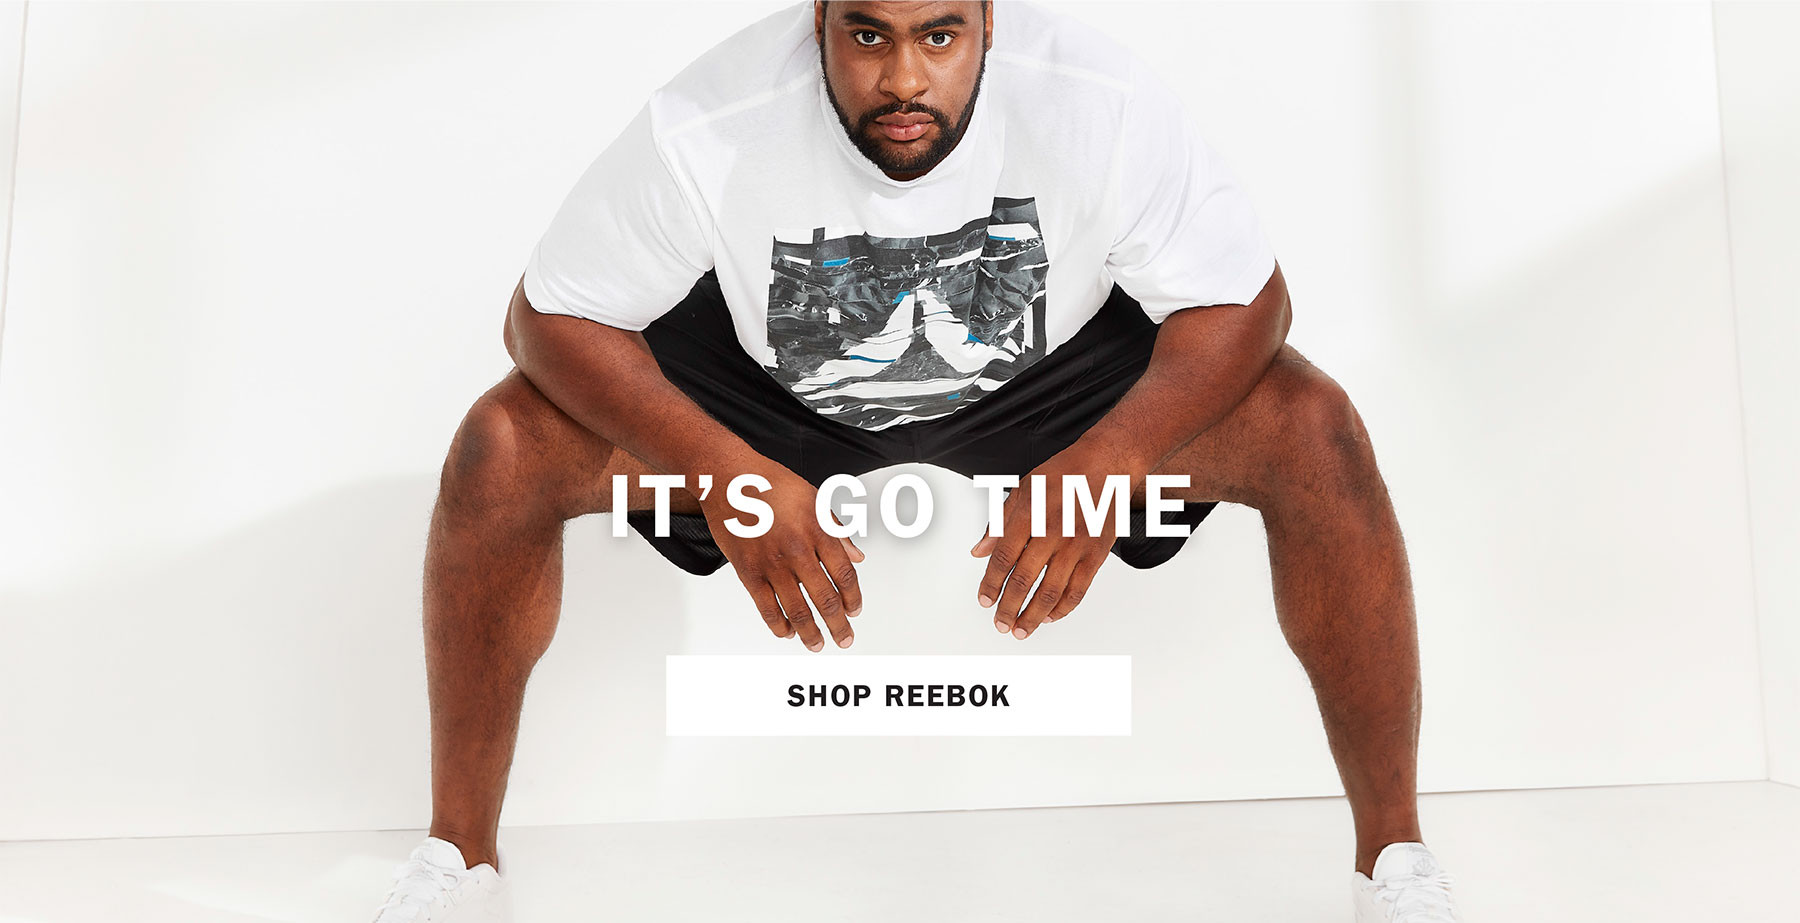 IT'S GO TIME | SHOP REEBOK